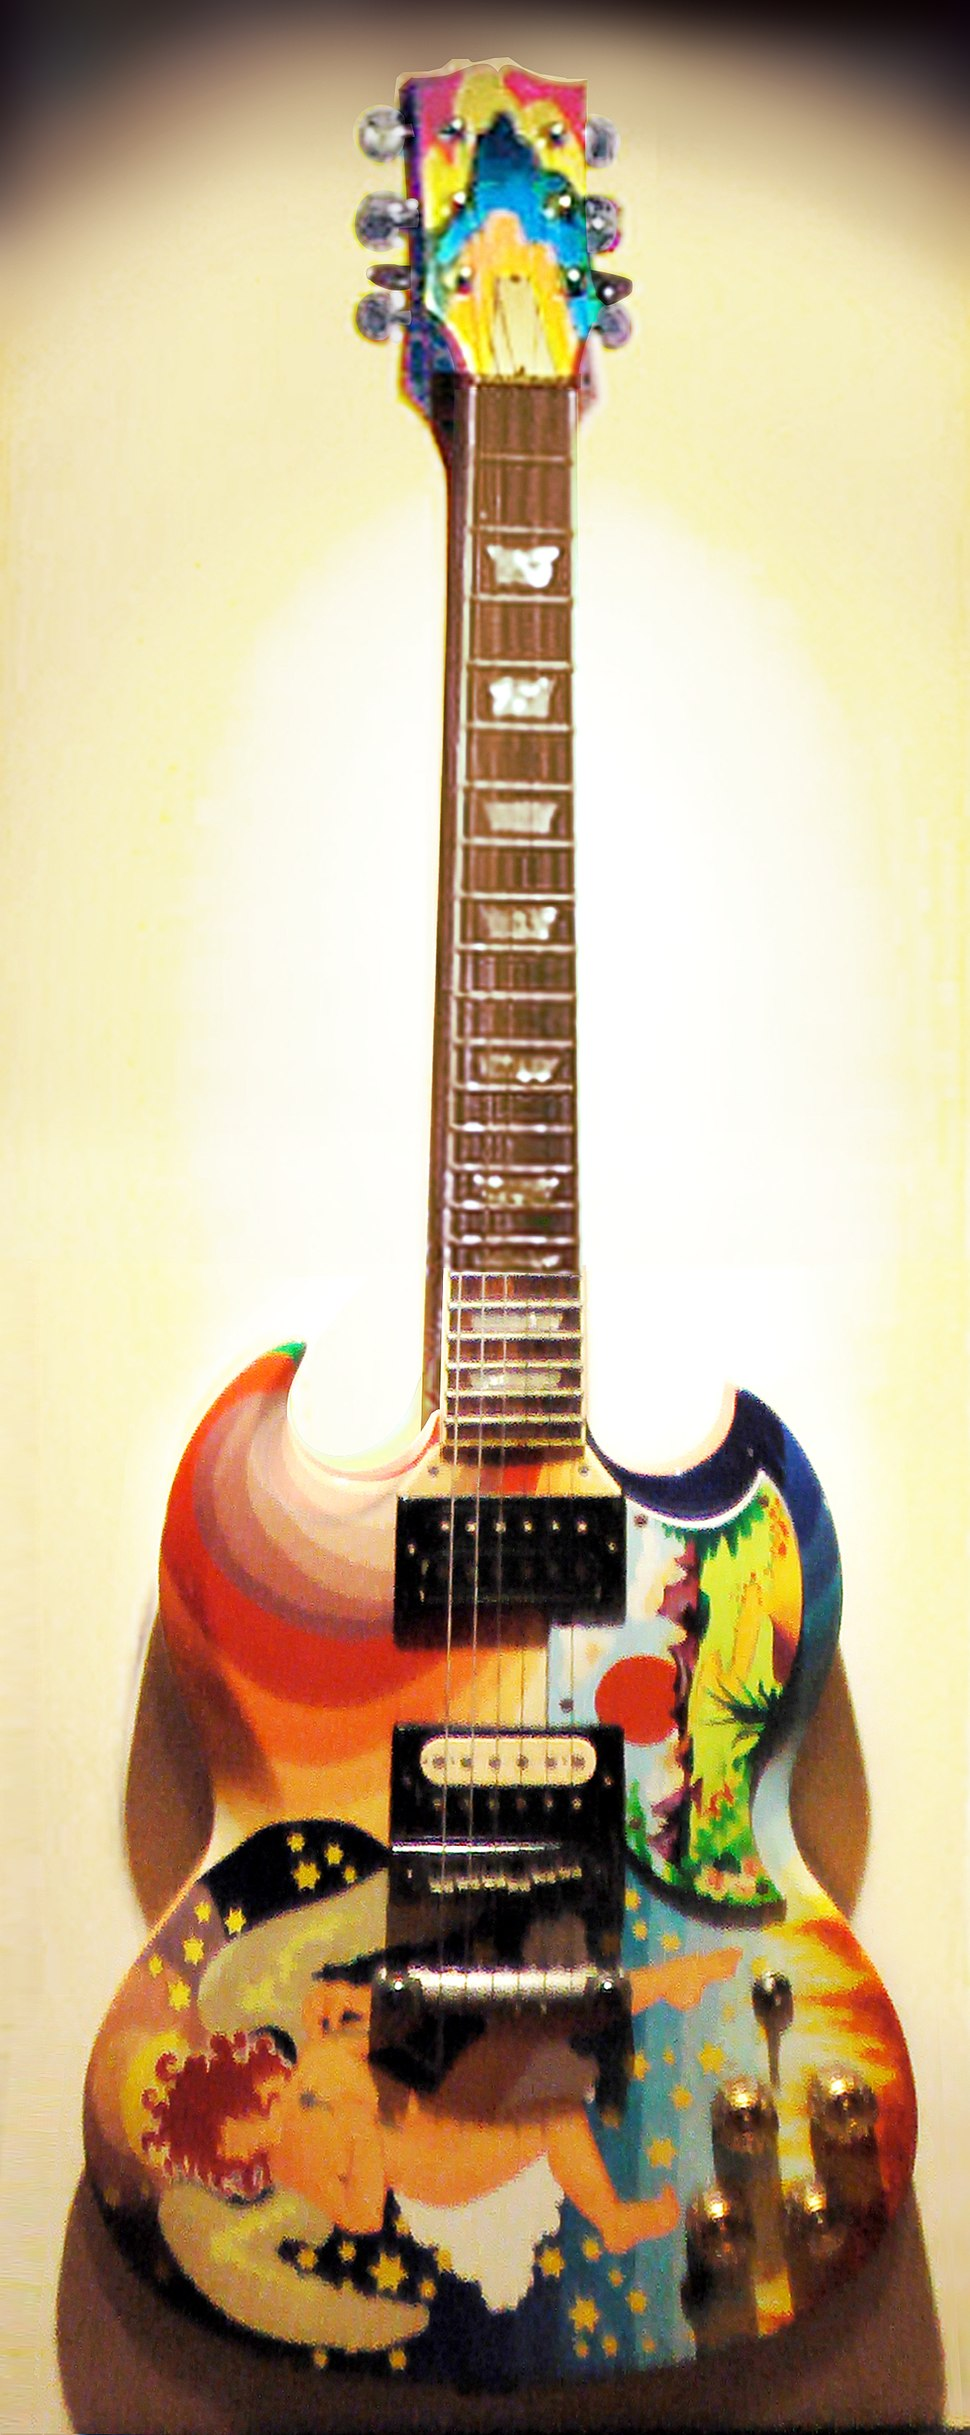 The Fool guitar (replica)